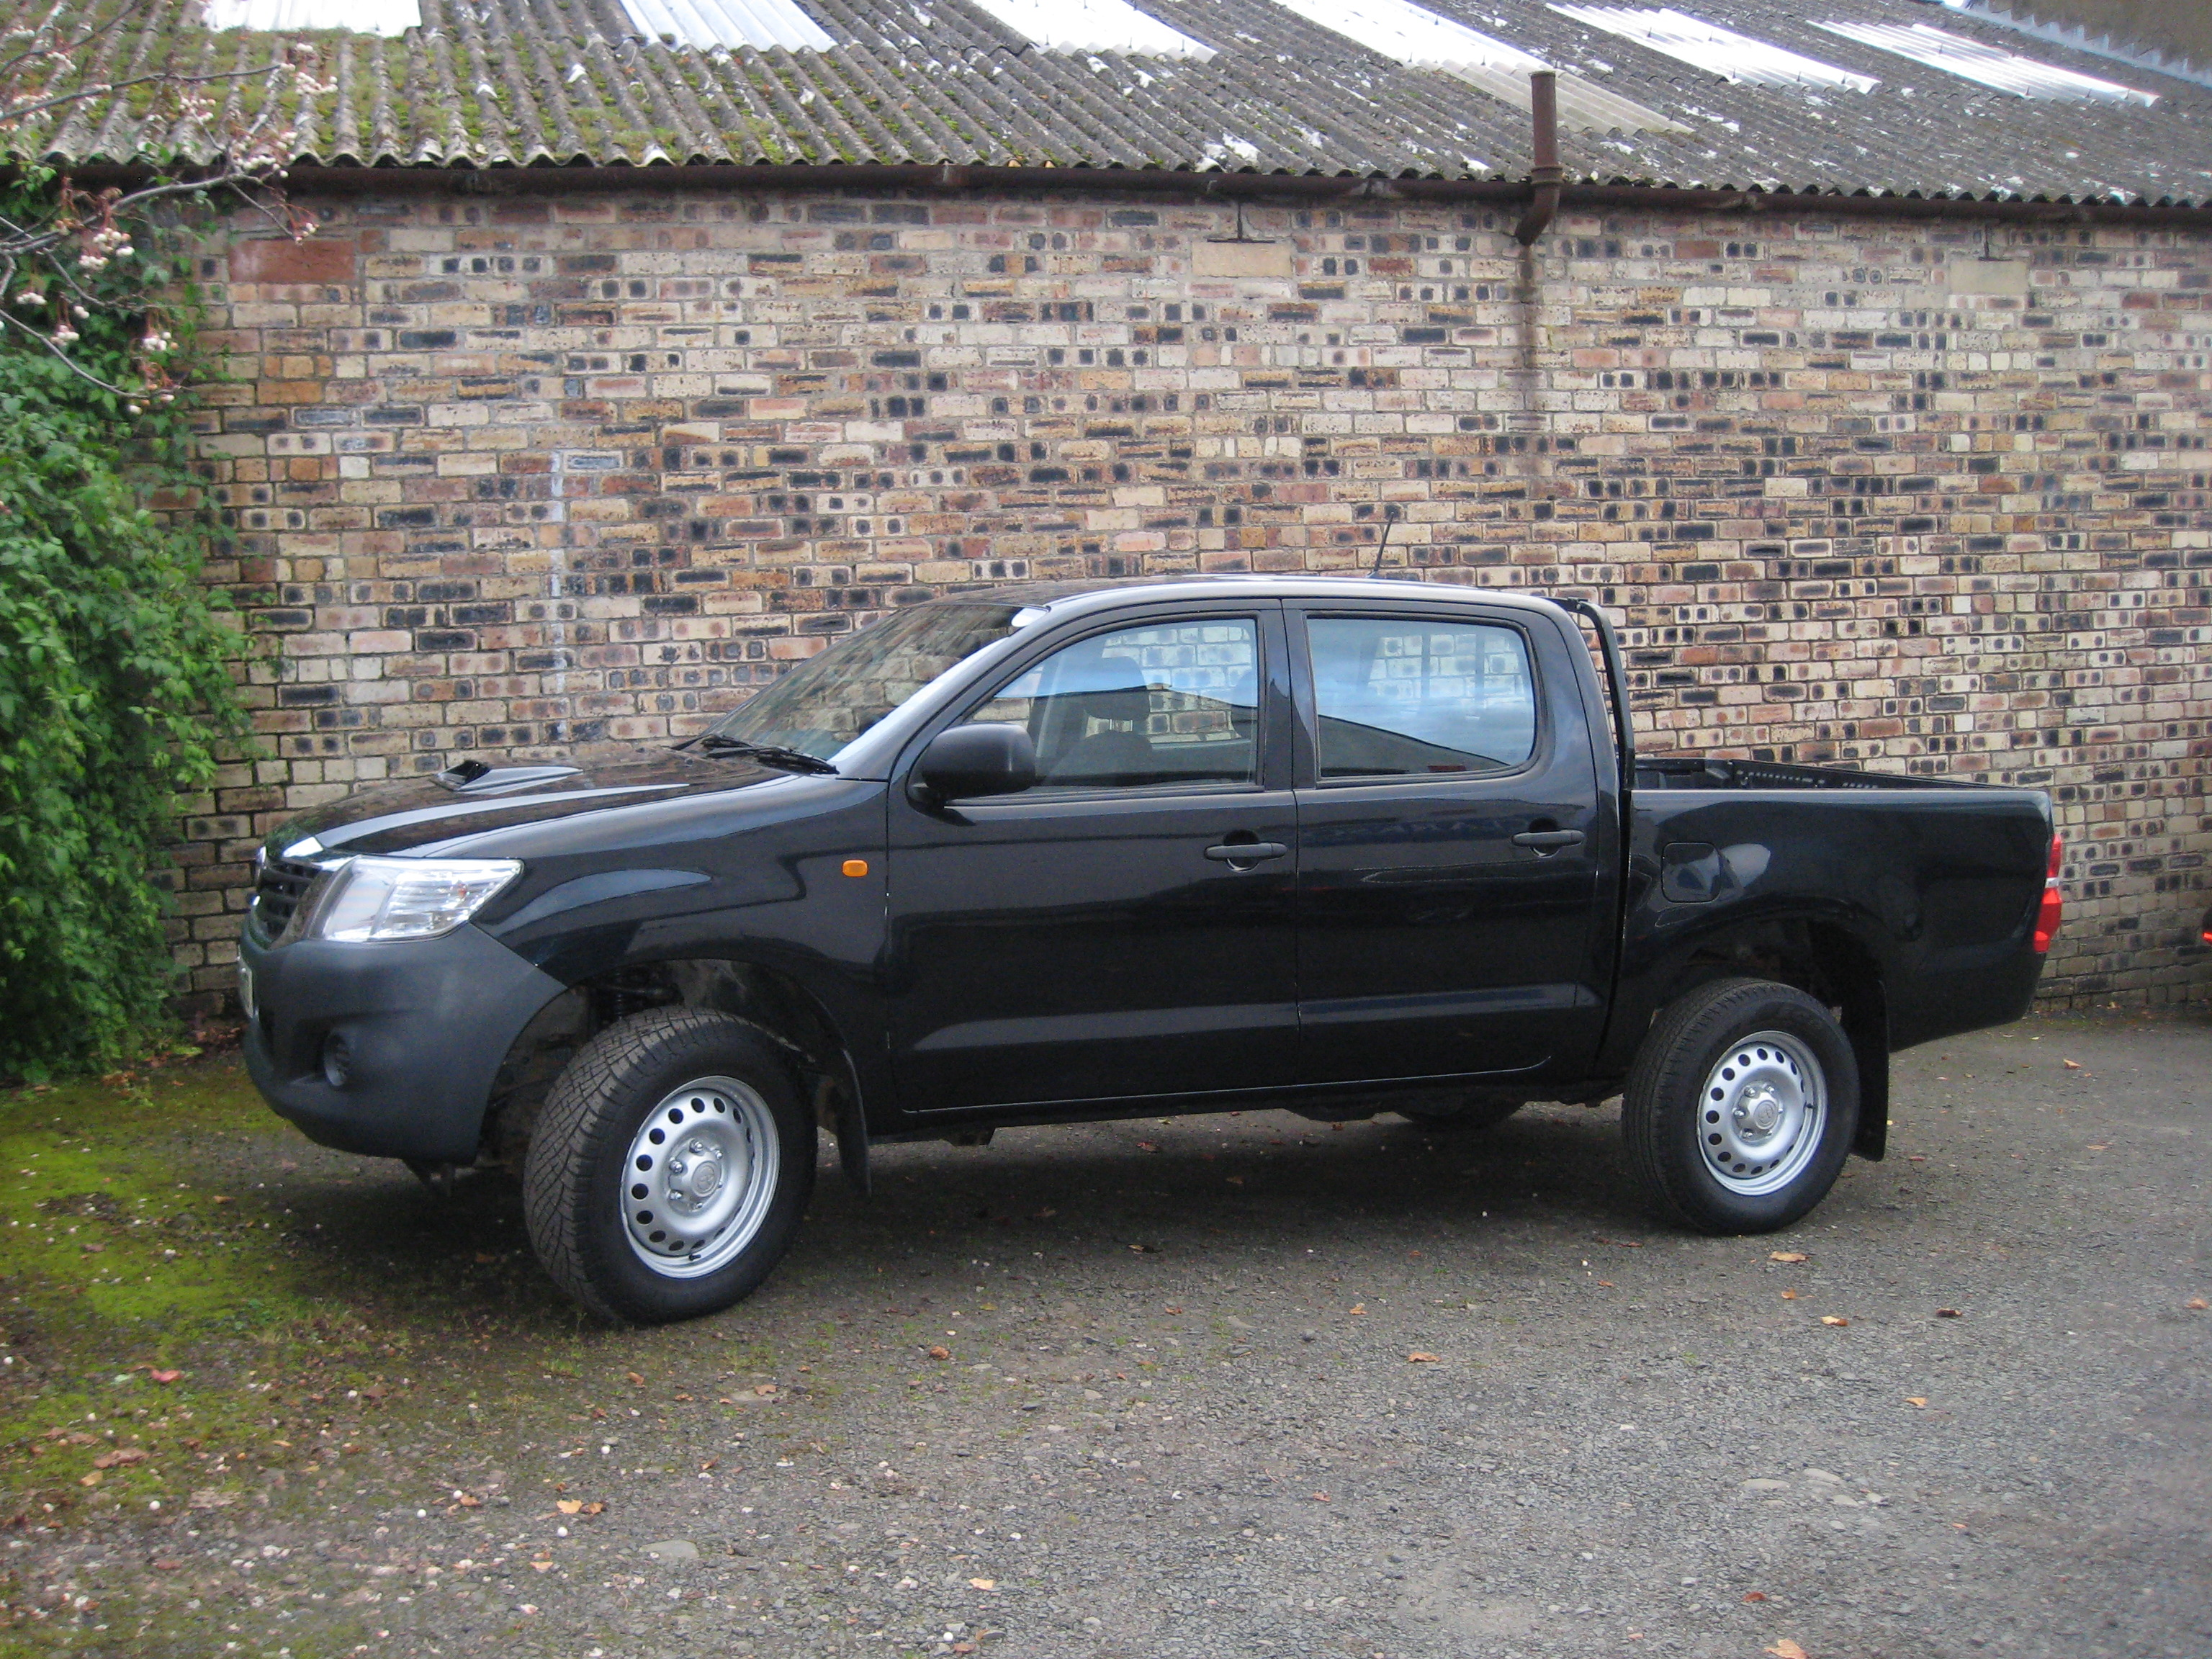 toyota hilux 2 5 d4d 144bhp active 4x4 double cab pick up. Black Bedroom Furniture Sets. Home Design Ideas